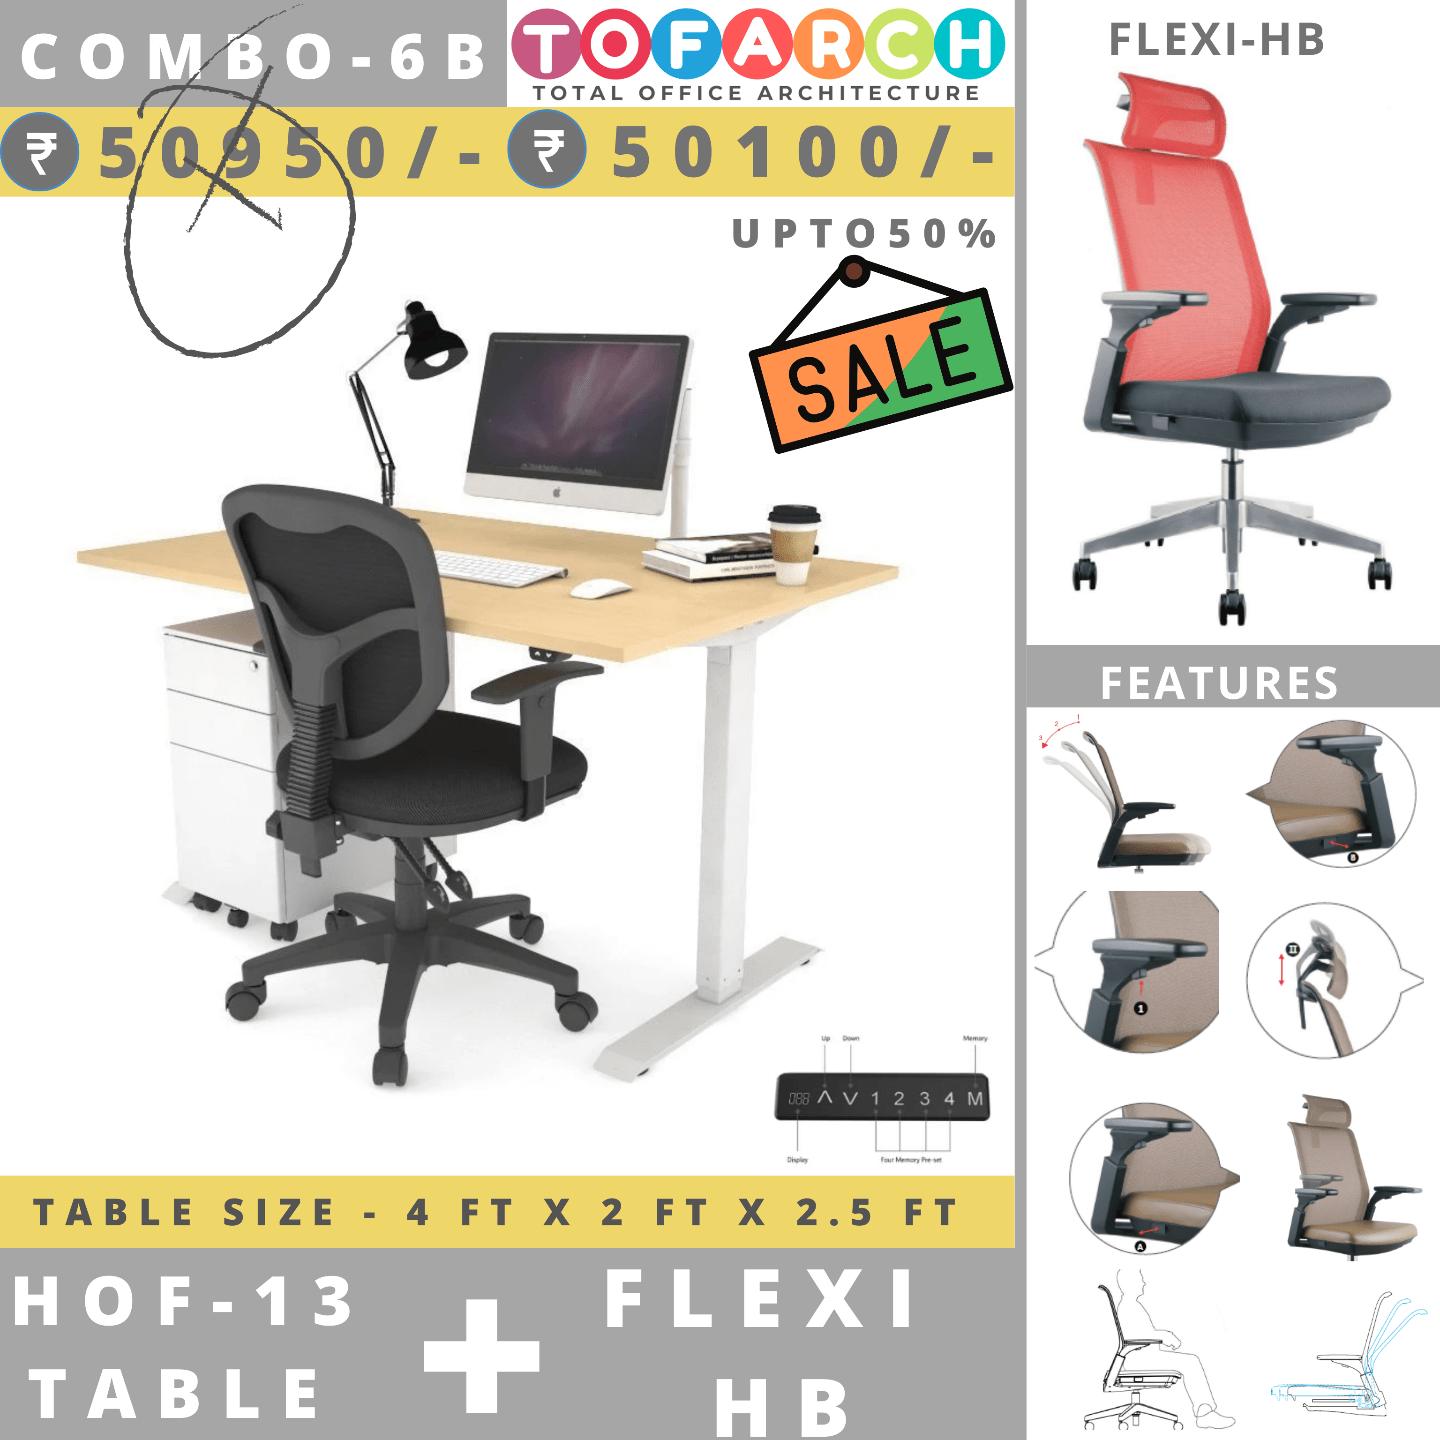 Table Chair Combo - 6B (HOF 13 Table + FLEXI HB Chair)